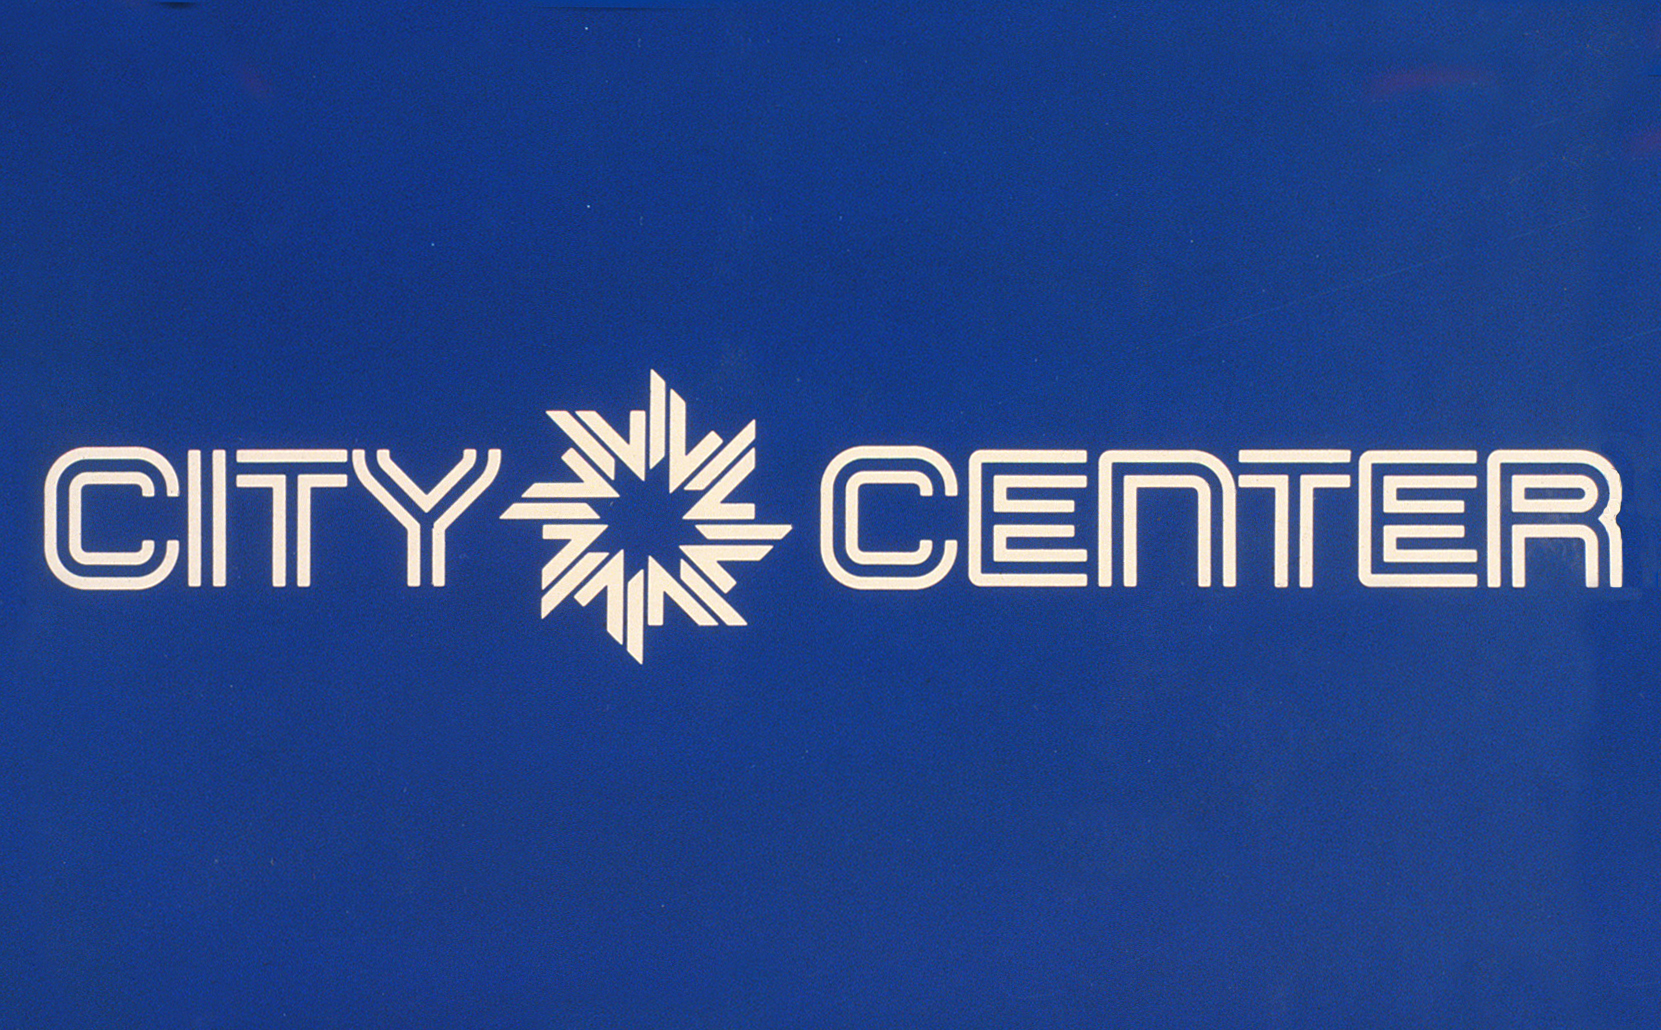 Minneapolis City Center logo and typeface signature.